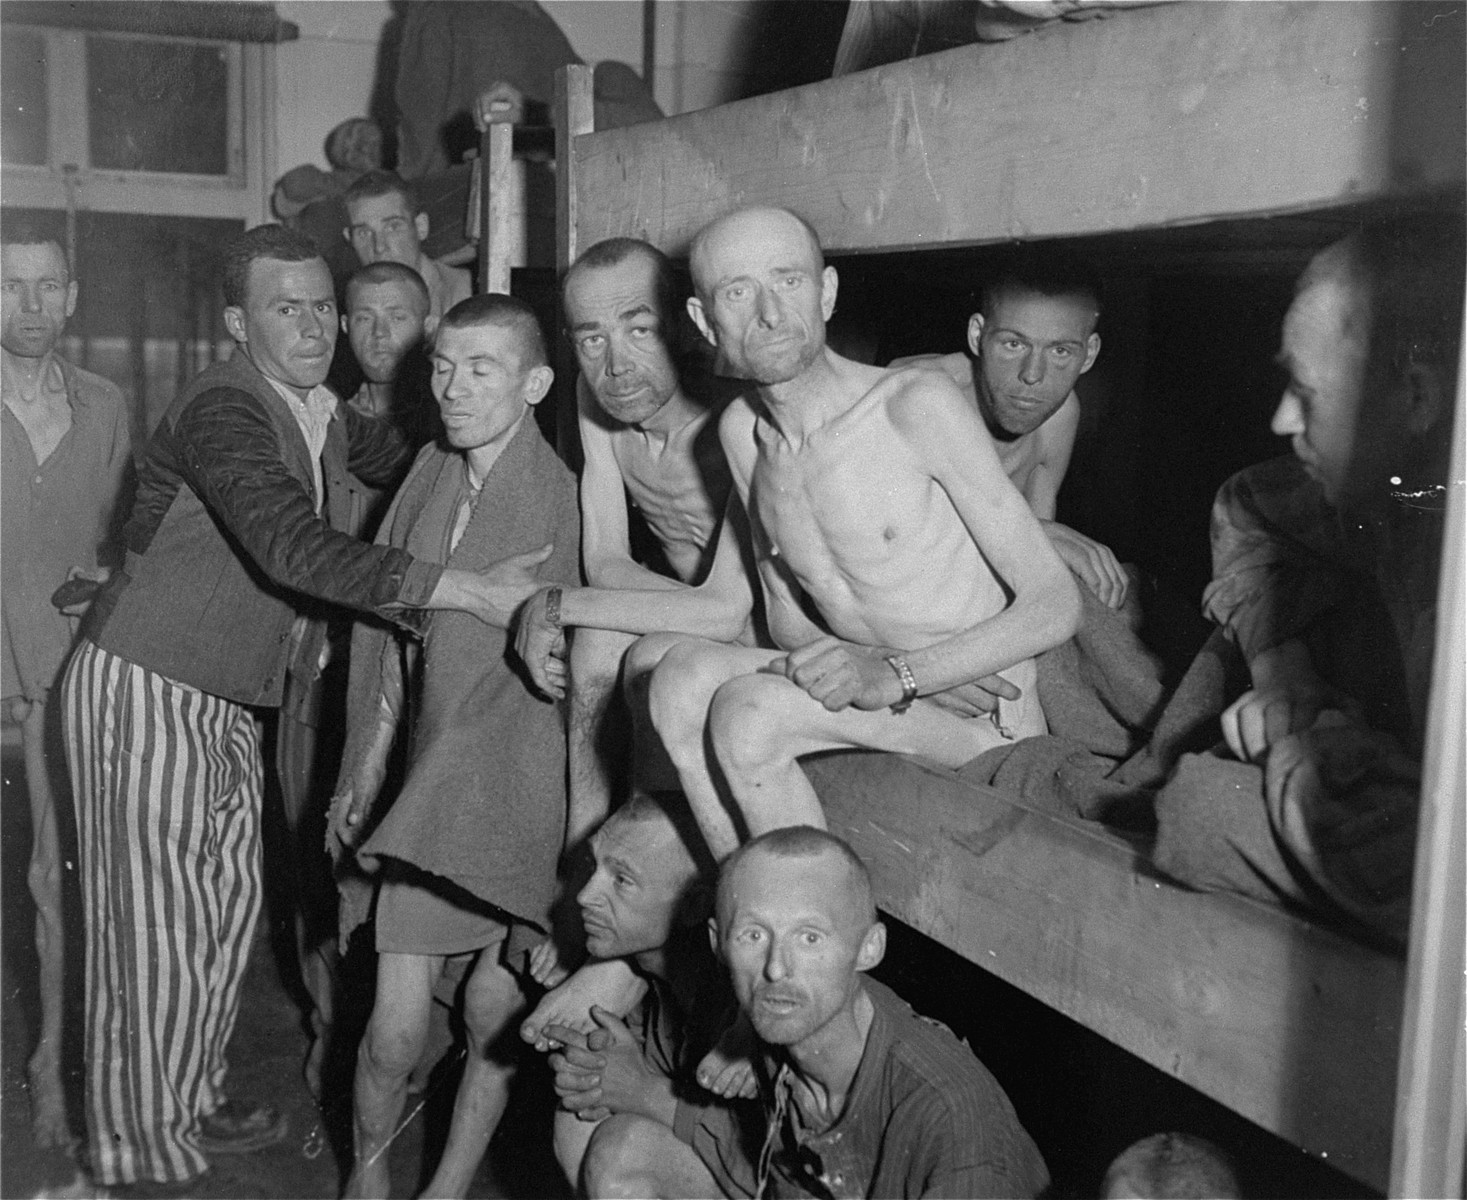 Emaciated survivors sit in bunks in one of the infirmary barracks in the Ebensee concentration camp.  Among those pictured is Edmond-Jean Remy, sitting, fourth from the right in the bunk.  Also pictured is Arnold Forner (Fornal), sitting on the bunk,  fourth from the right.